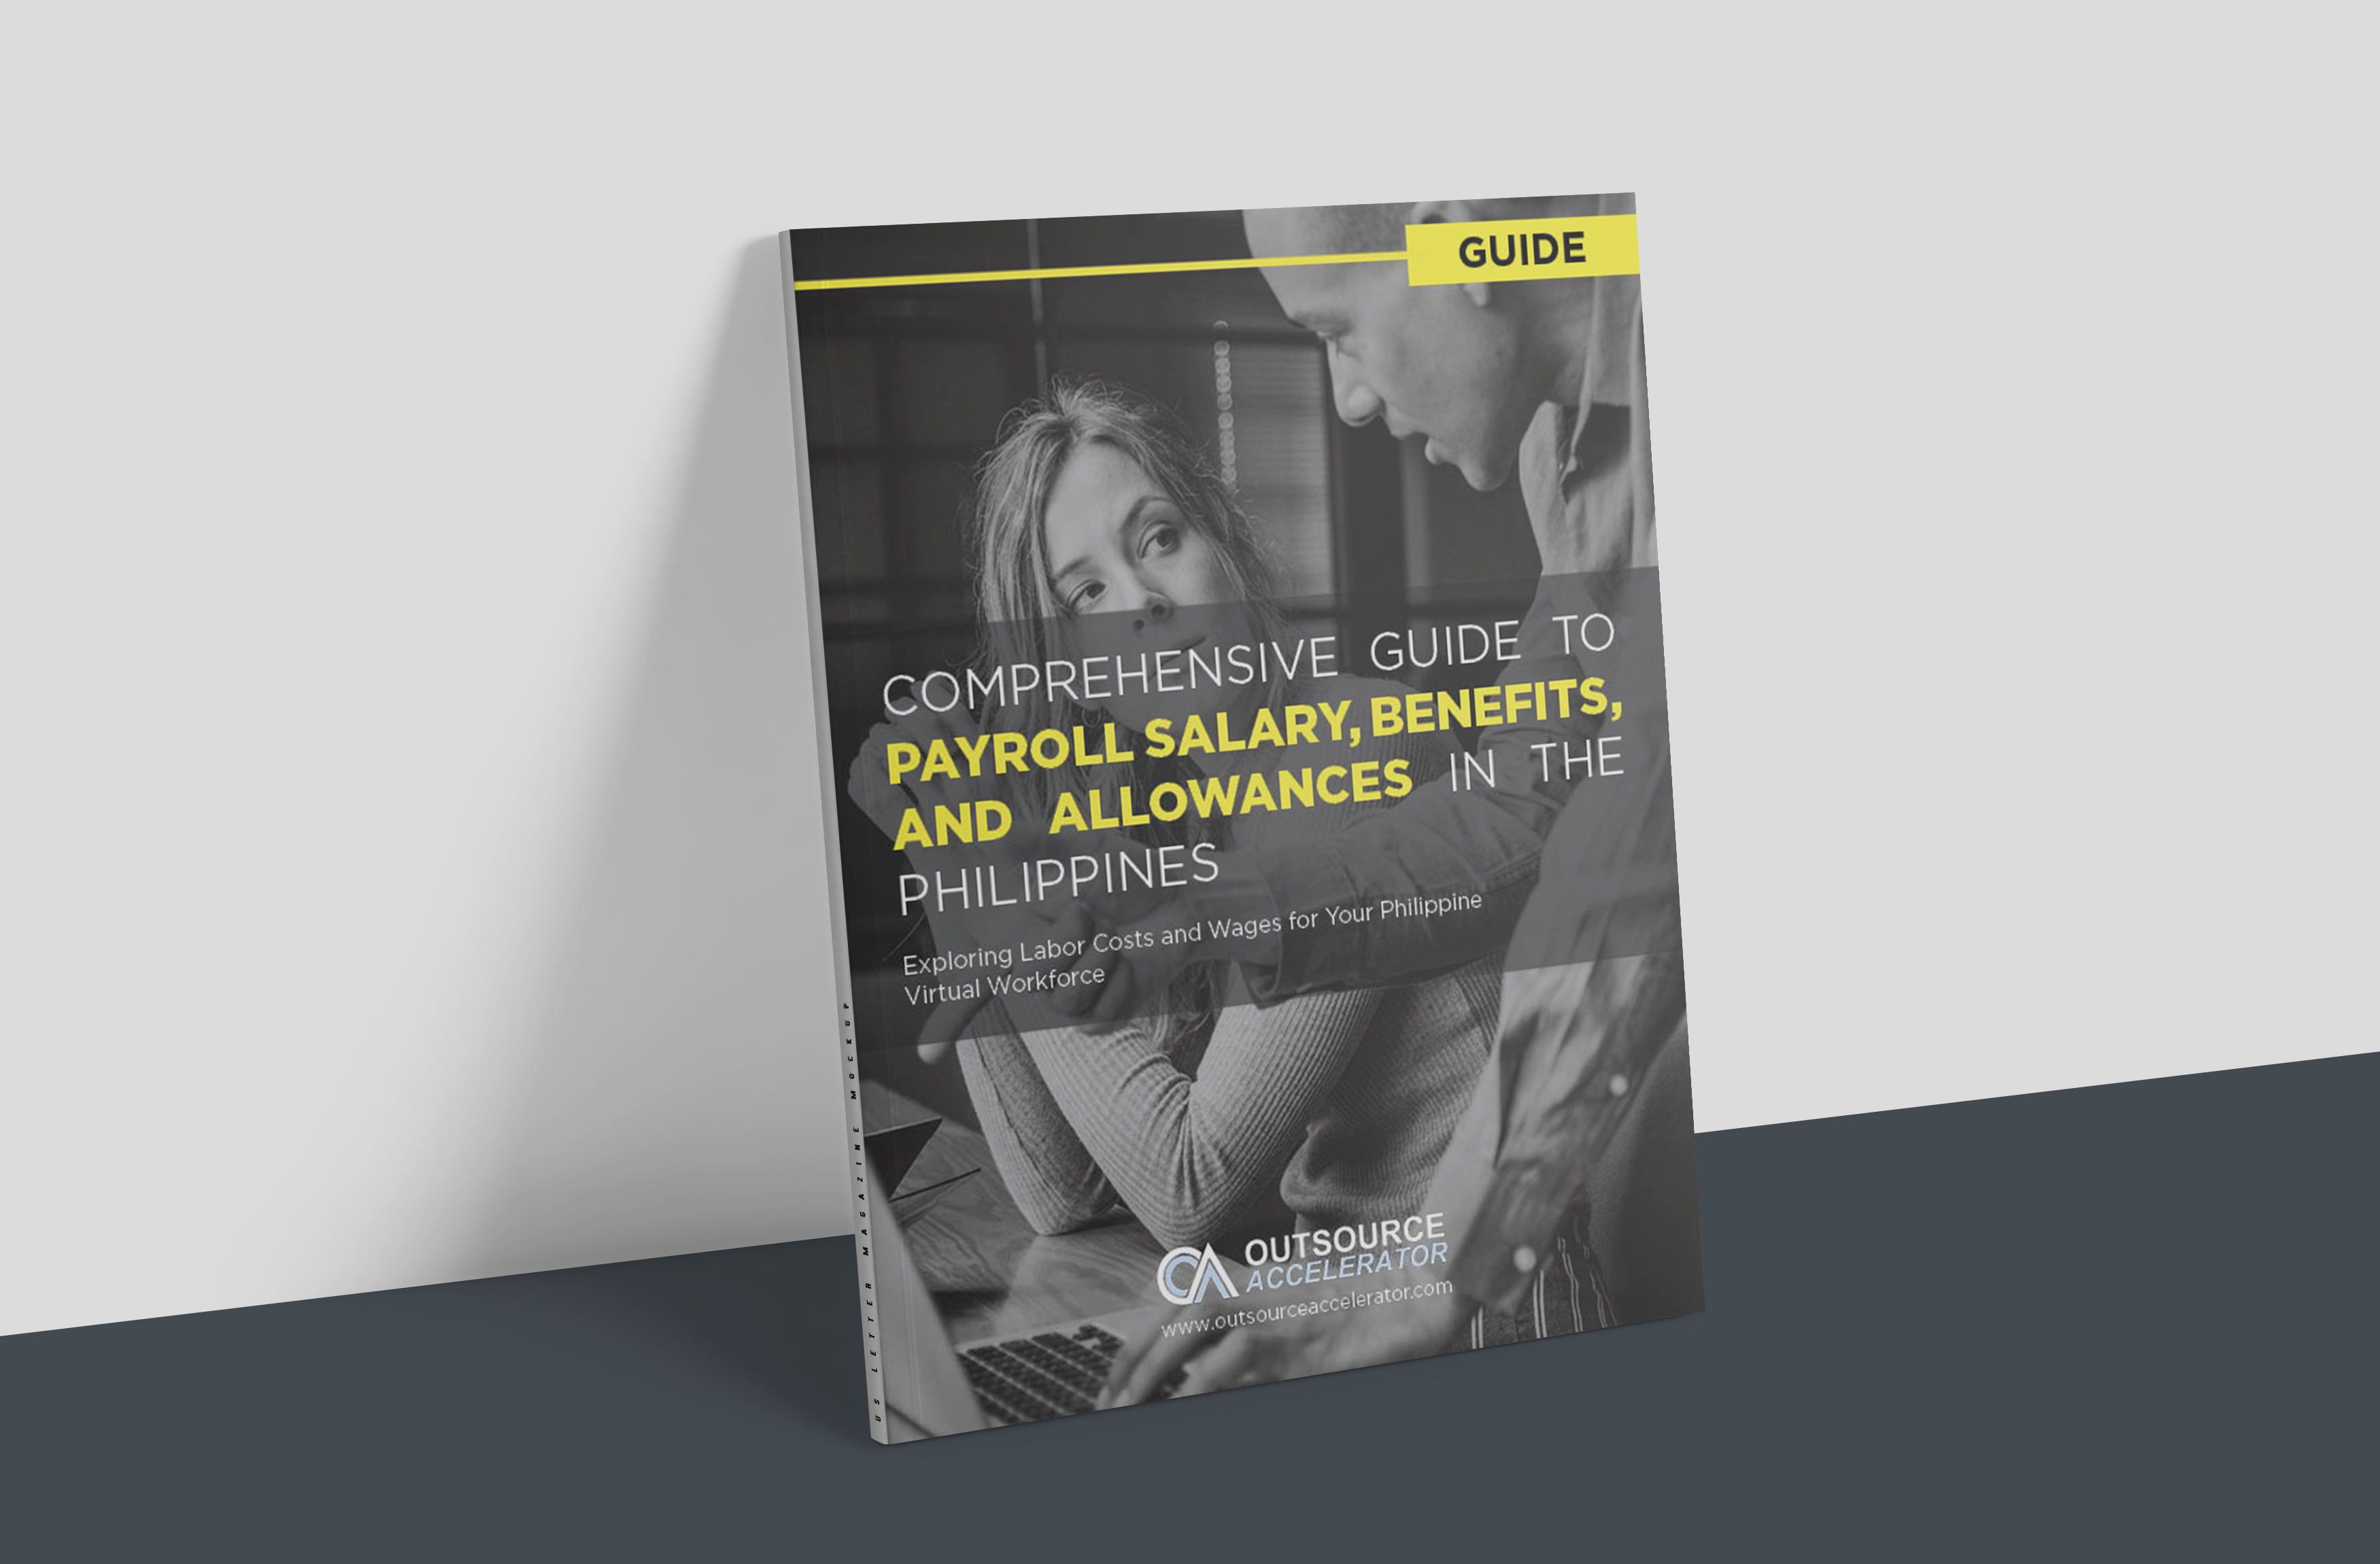 Guide to Payroll Salary, Benefits and Allowances in the Philippines